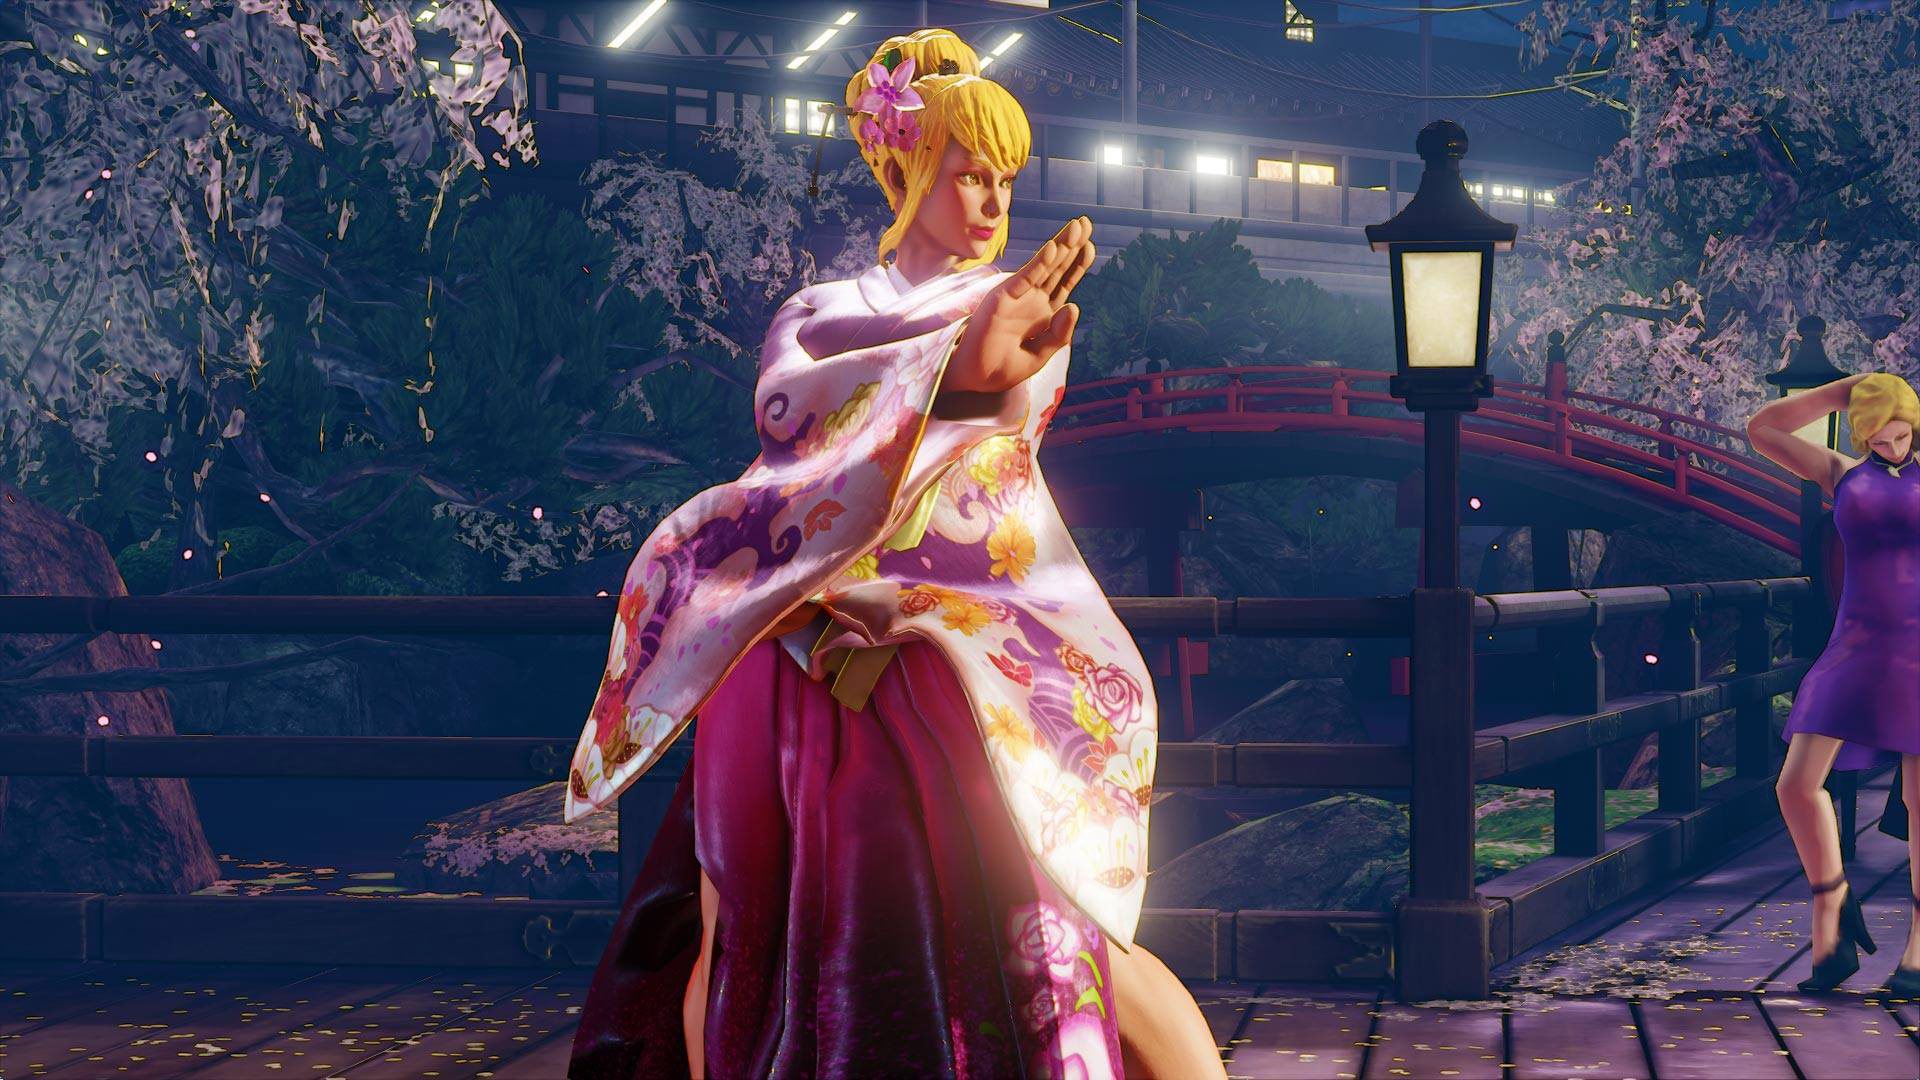 New Street Fighter 5 30th anniversary costumes 6 out of 6 image gallery